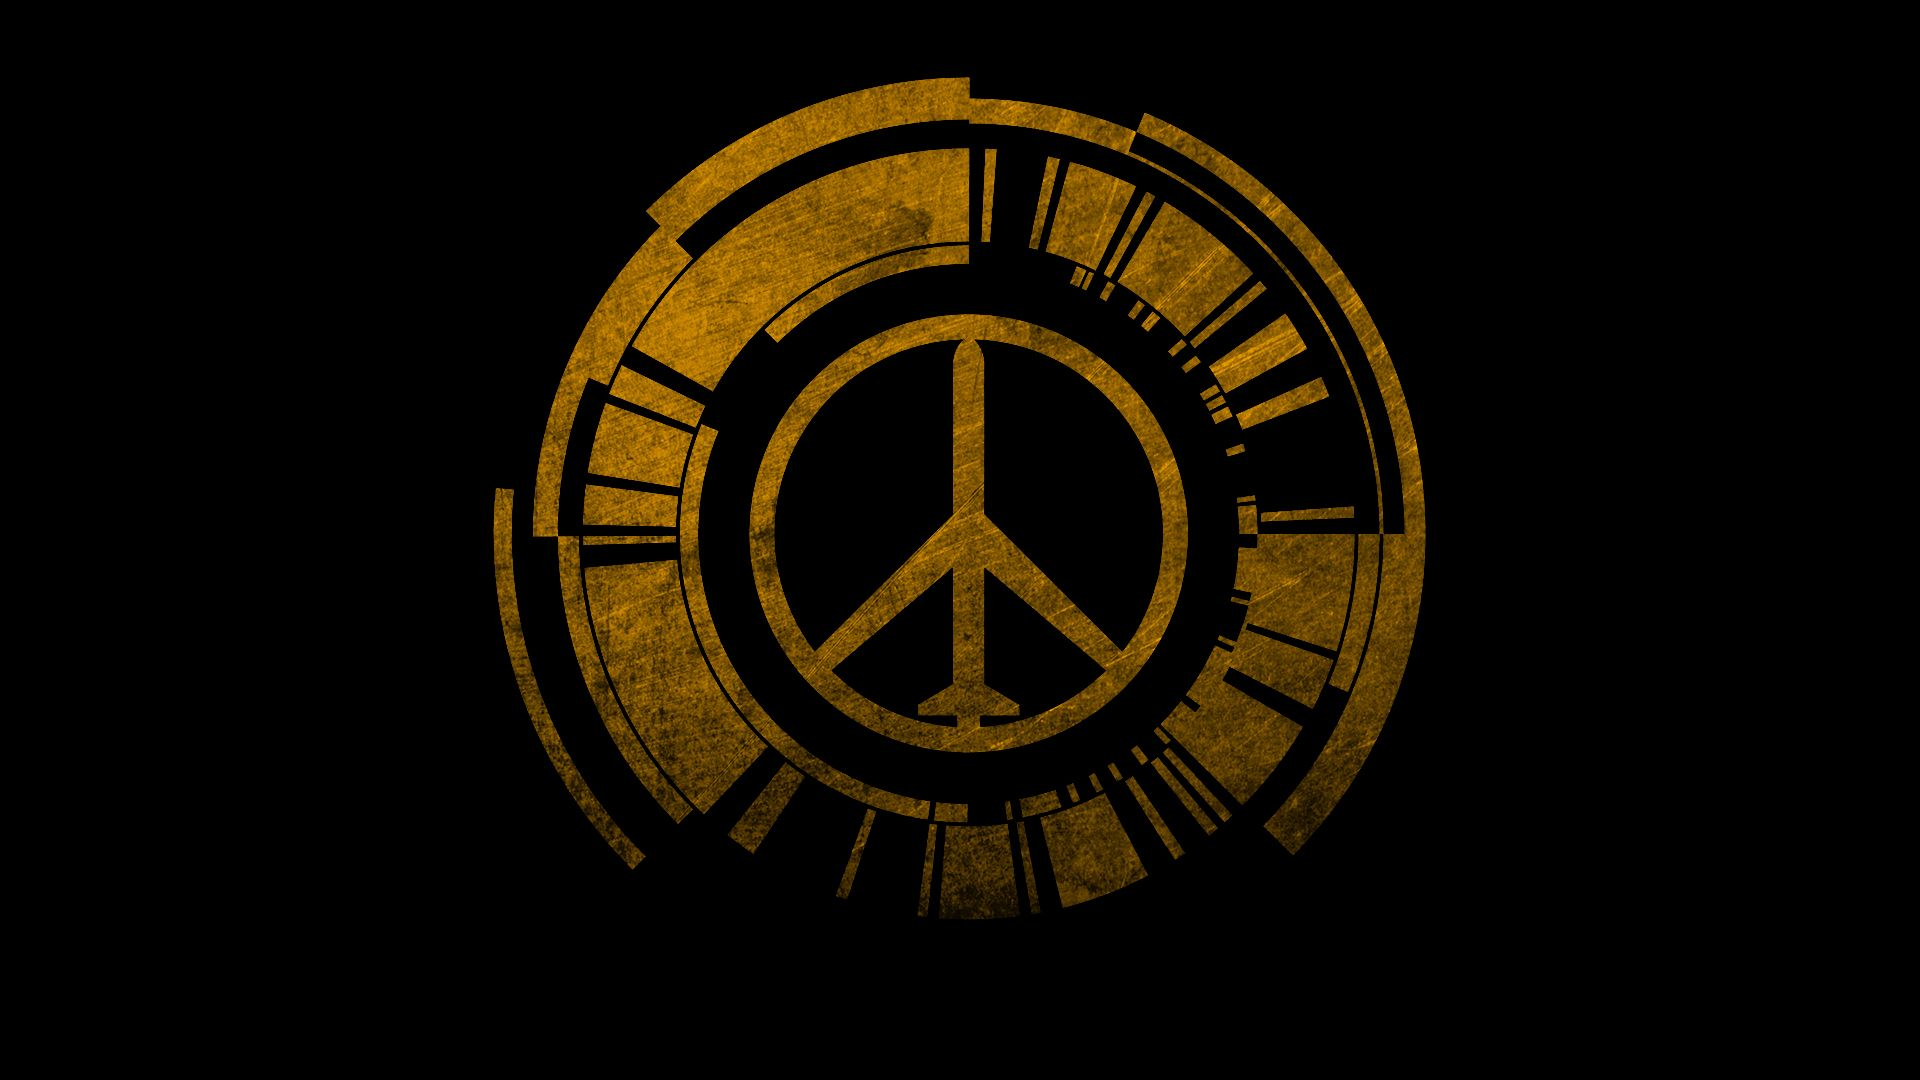 Peace hd wallpaper